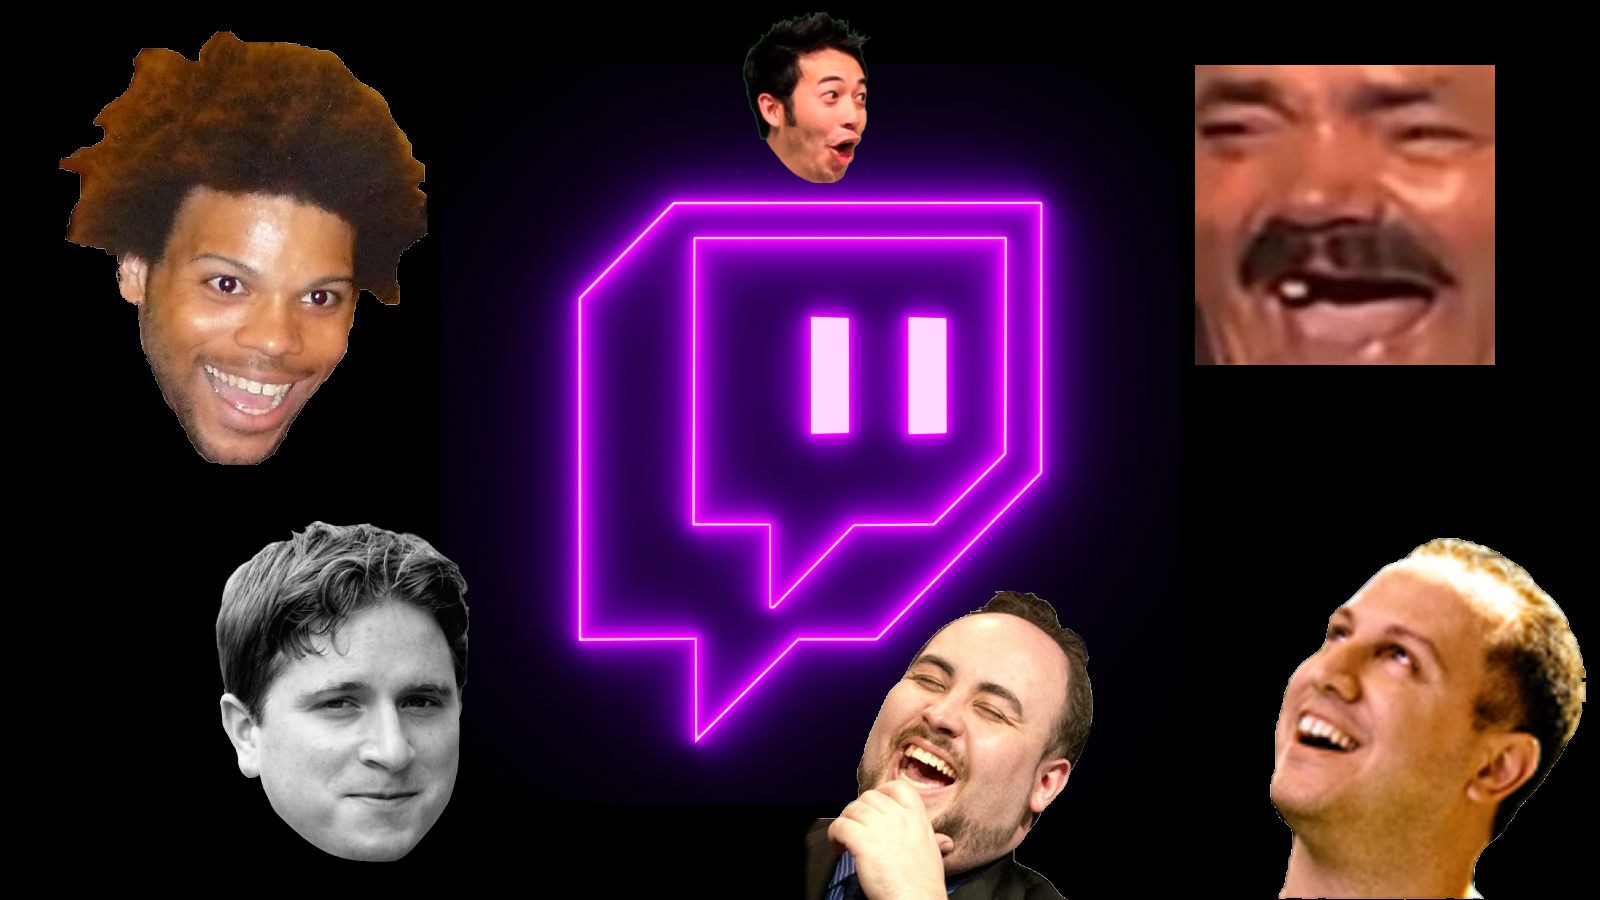 Twitch emotes meaning explained